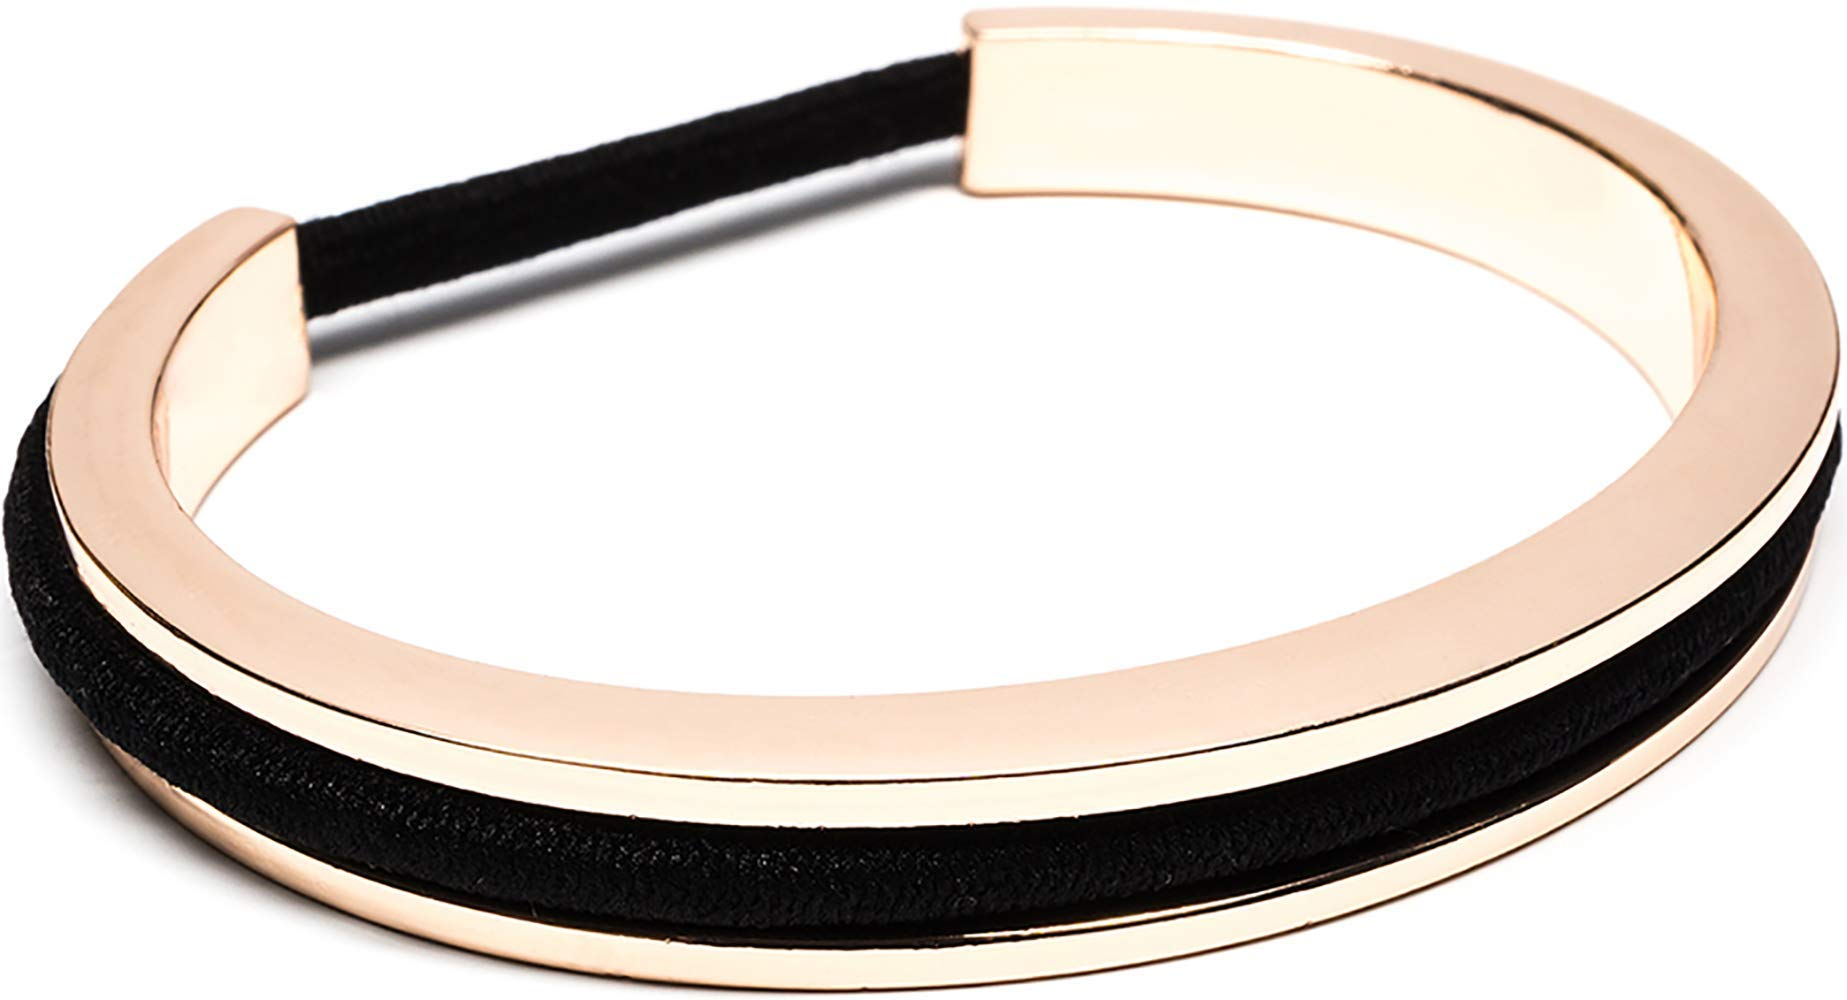 Maria Shireen  Classic Design Hair Tie Bracelet - Stainless Steel Hair Tie  Holder - Functional 6e563956906